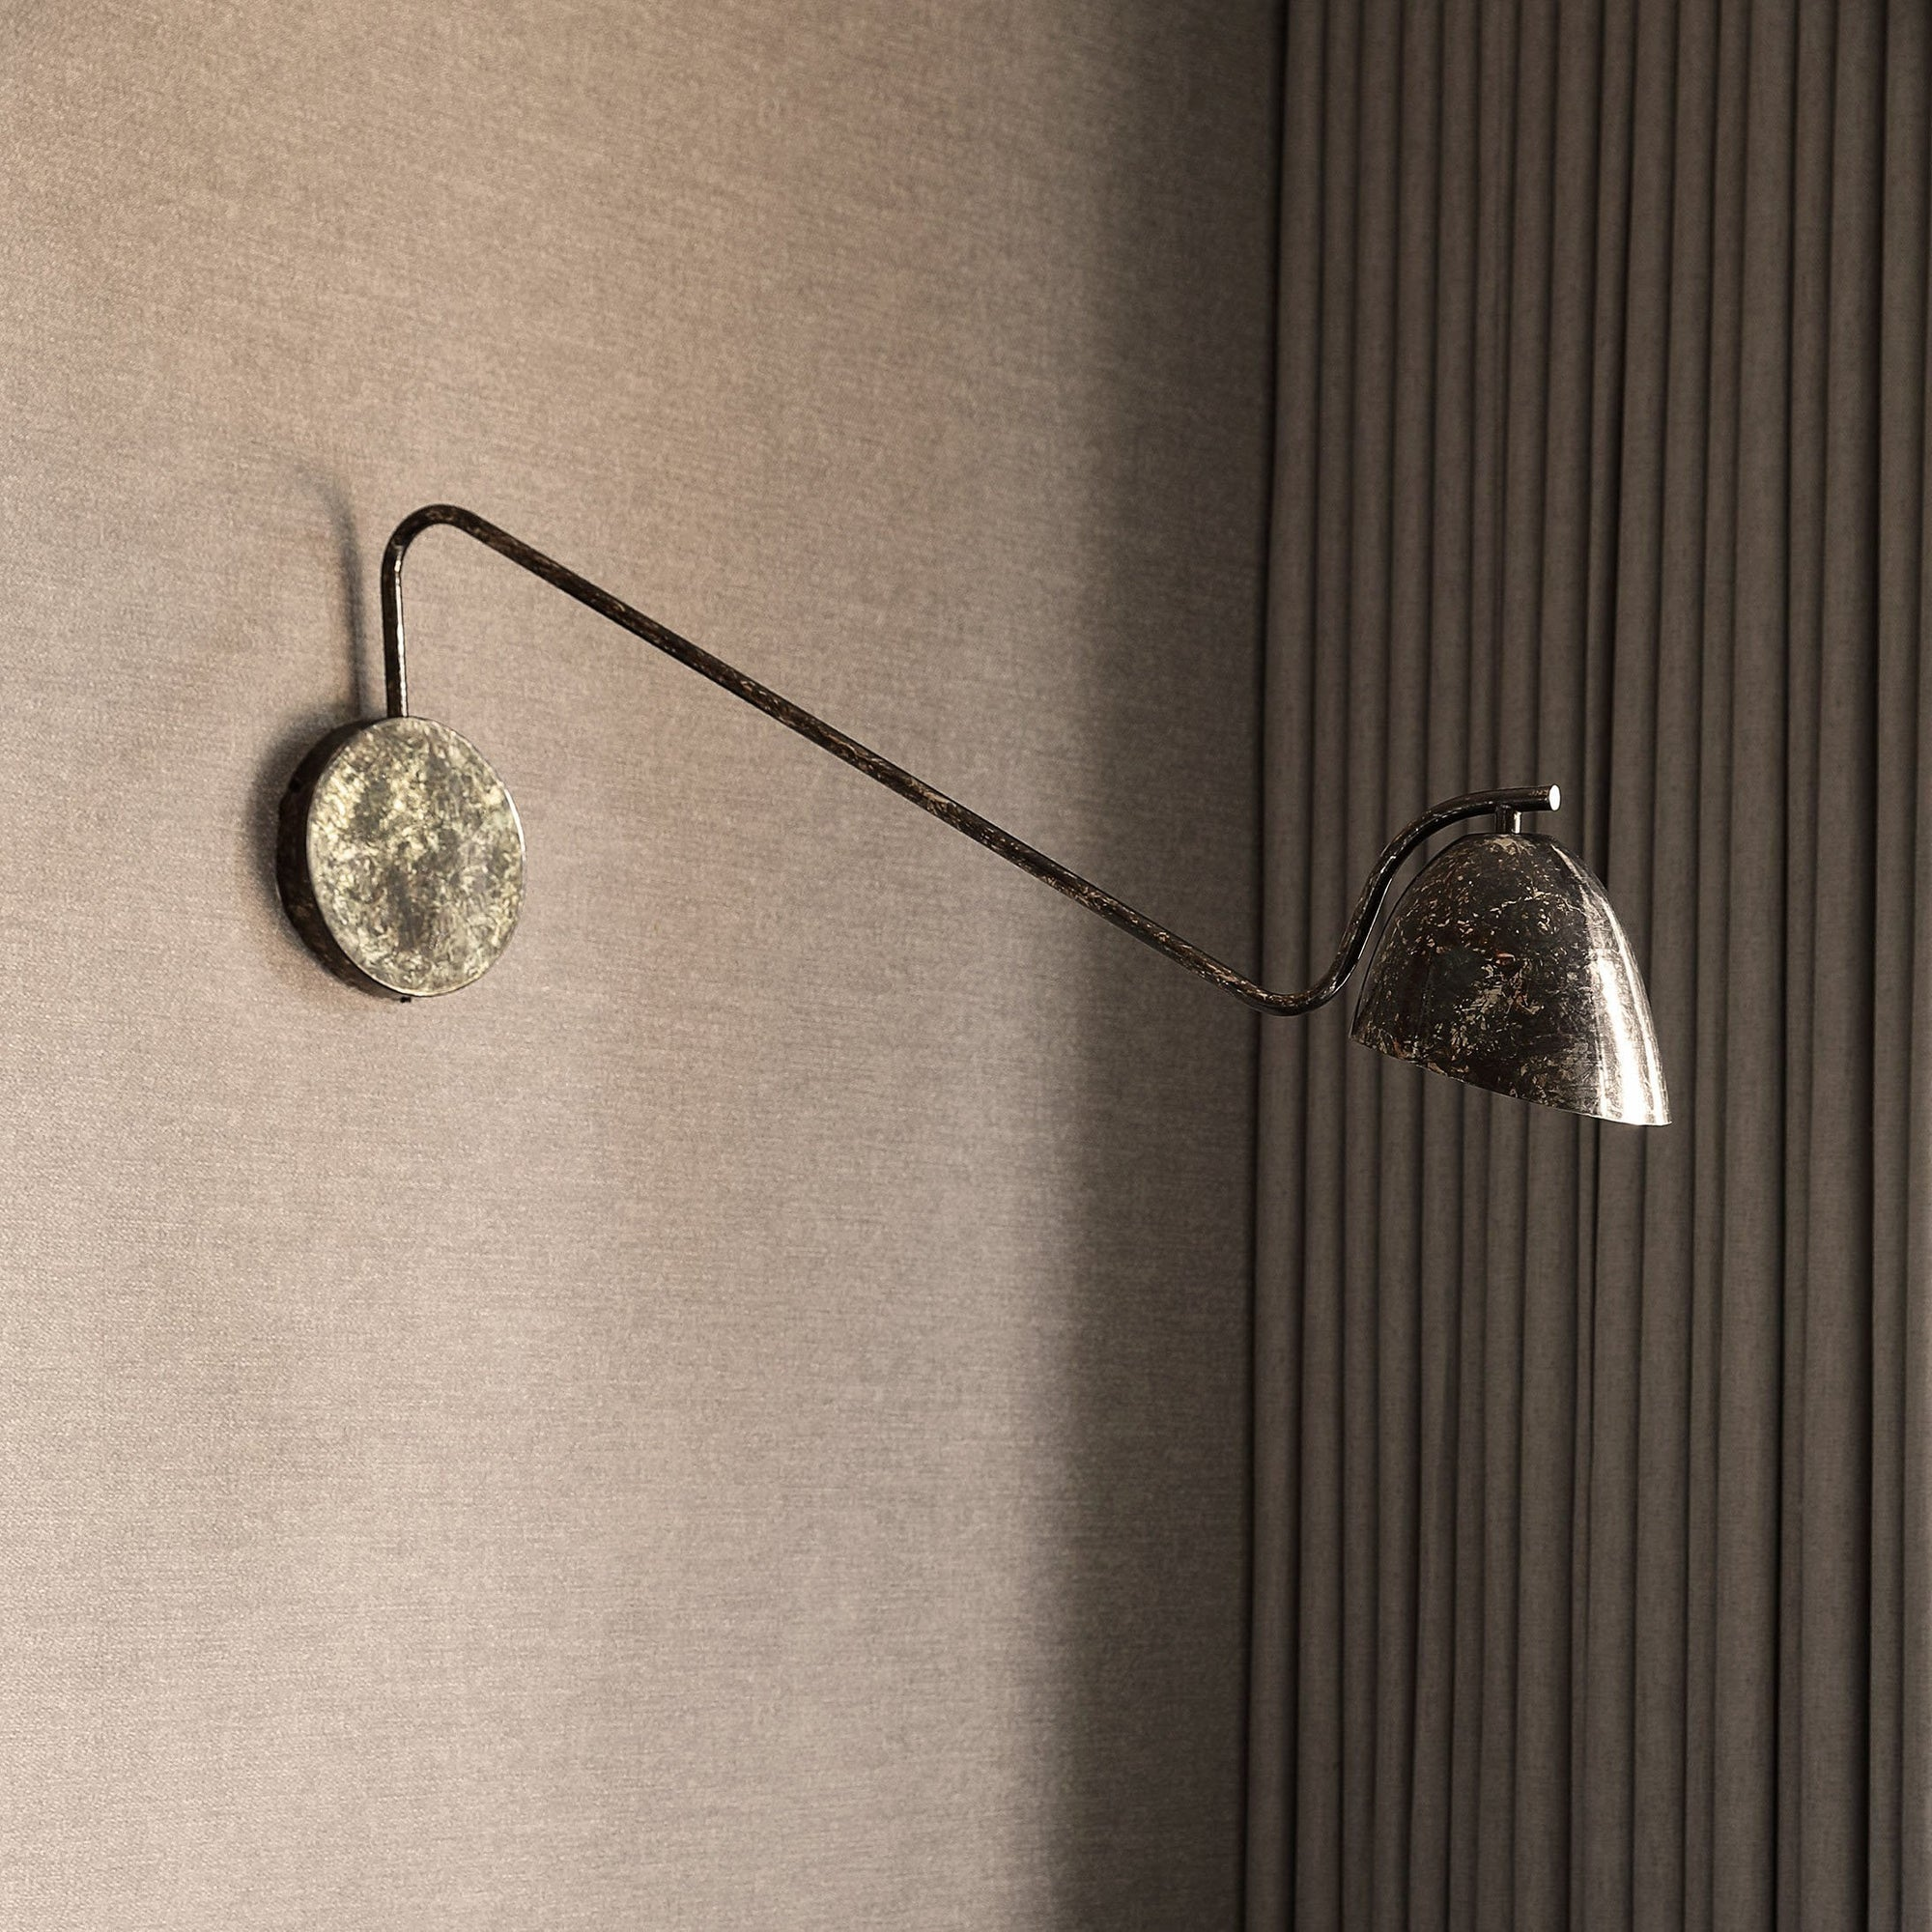 LIAN SWING LAMP by Studio 19 at SARZA. Lamps, Lian, Lian Swing Lamp, Lighting, Studio 19